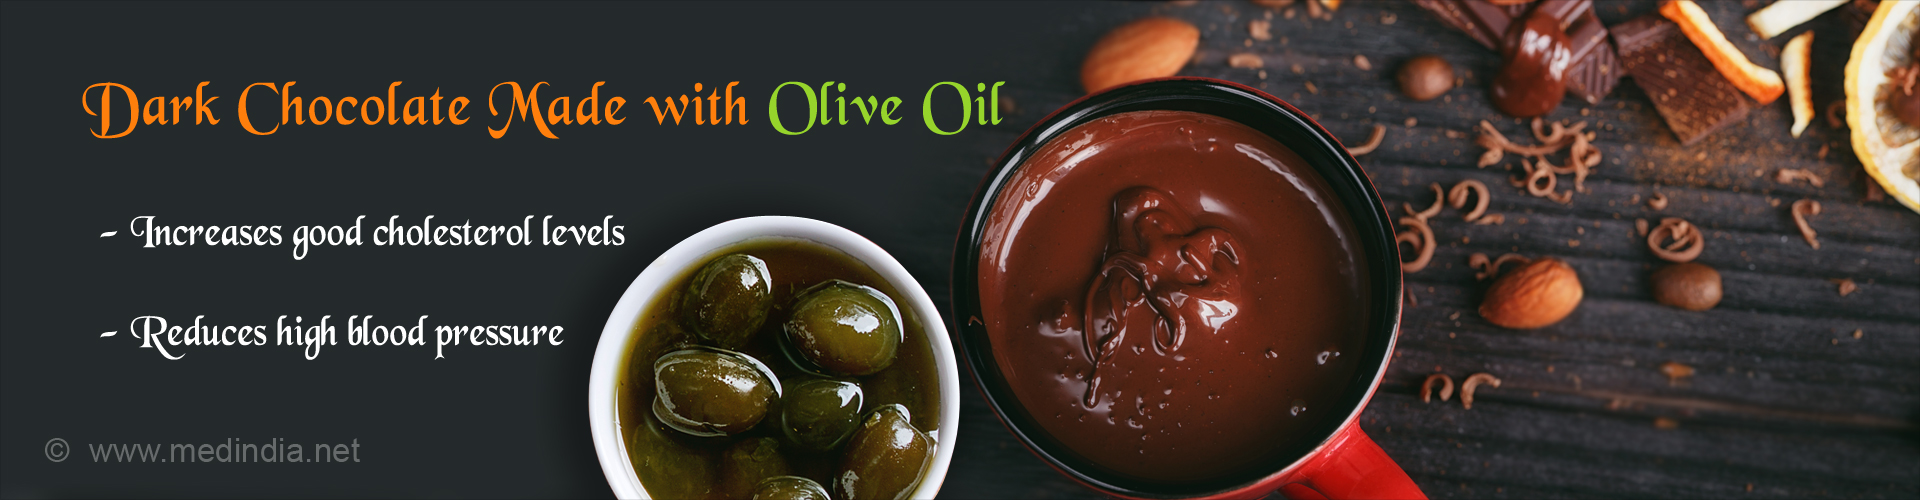 Dark Chocolate With Olive Oil Increases Good Cholesterol